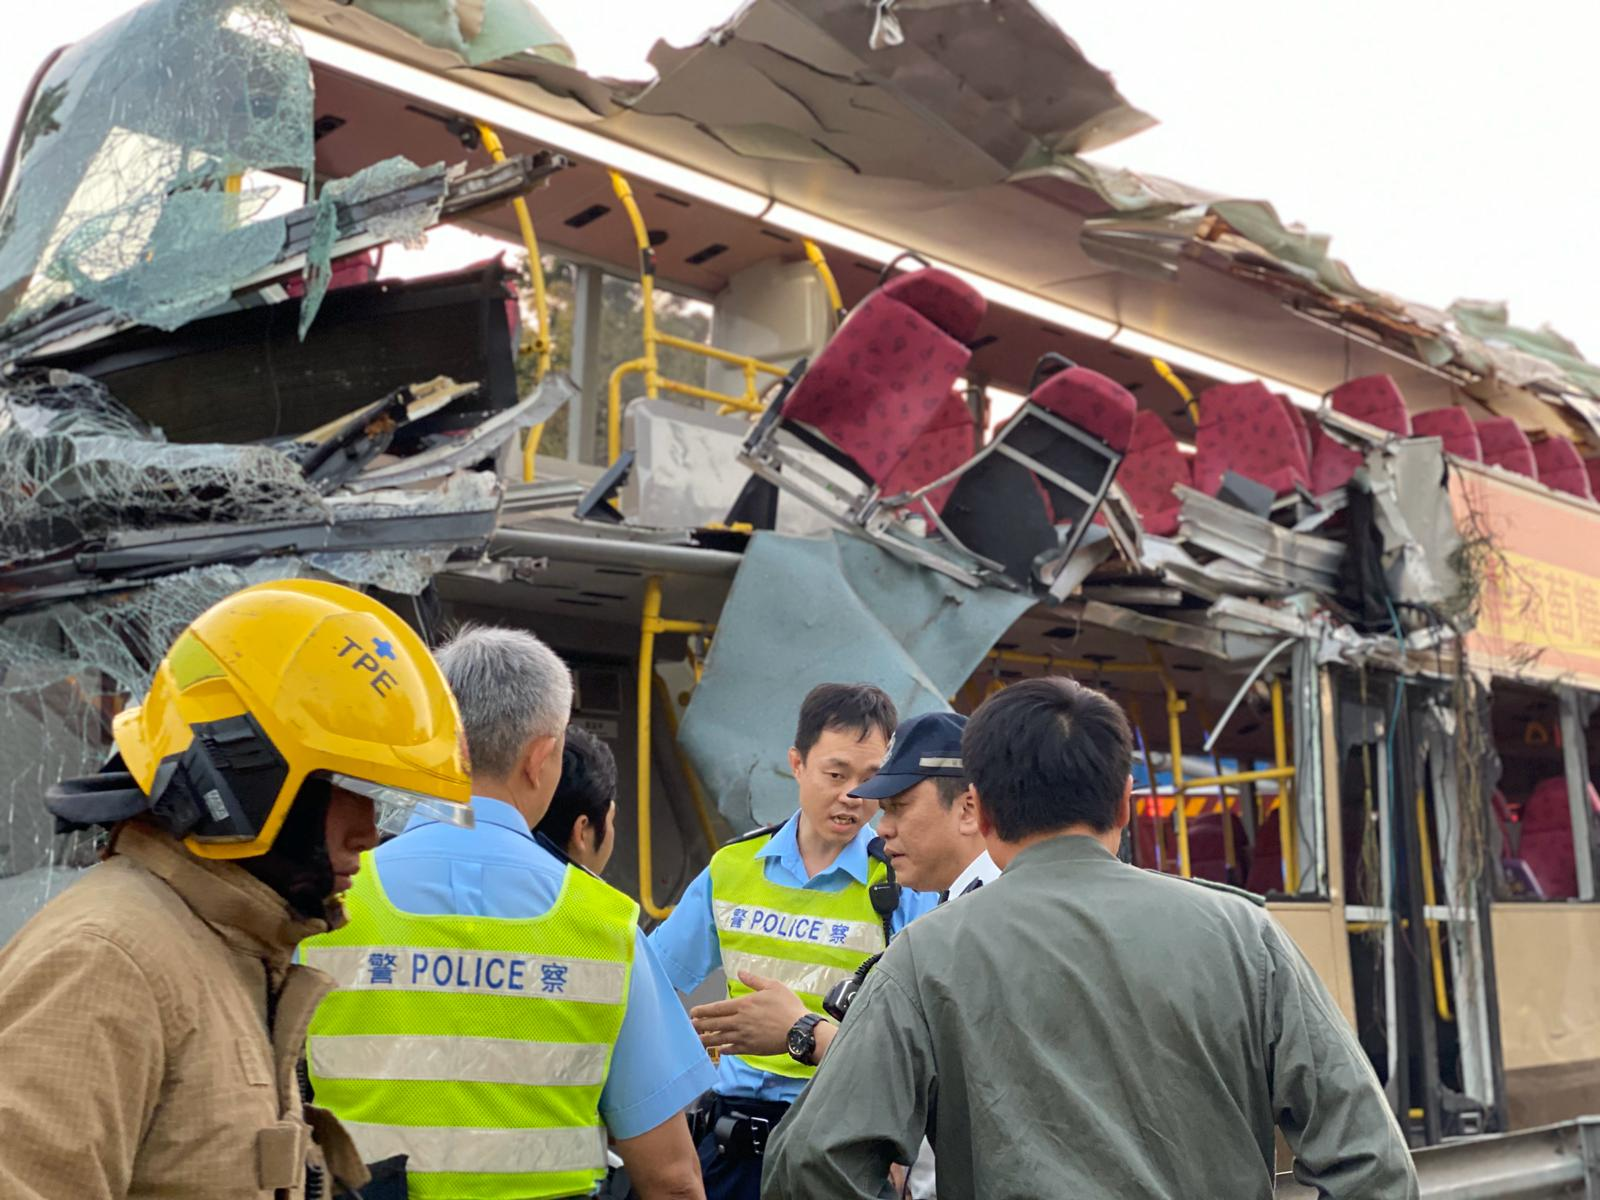 Death toll from Hong Kong bus crash rises to 6